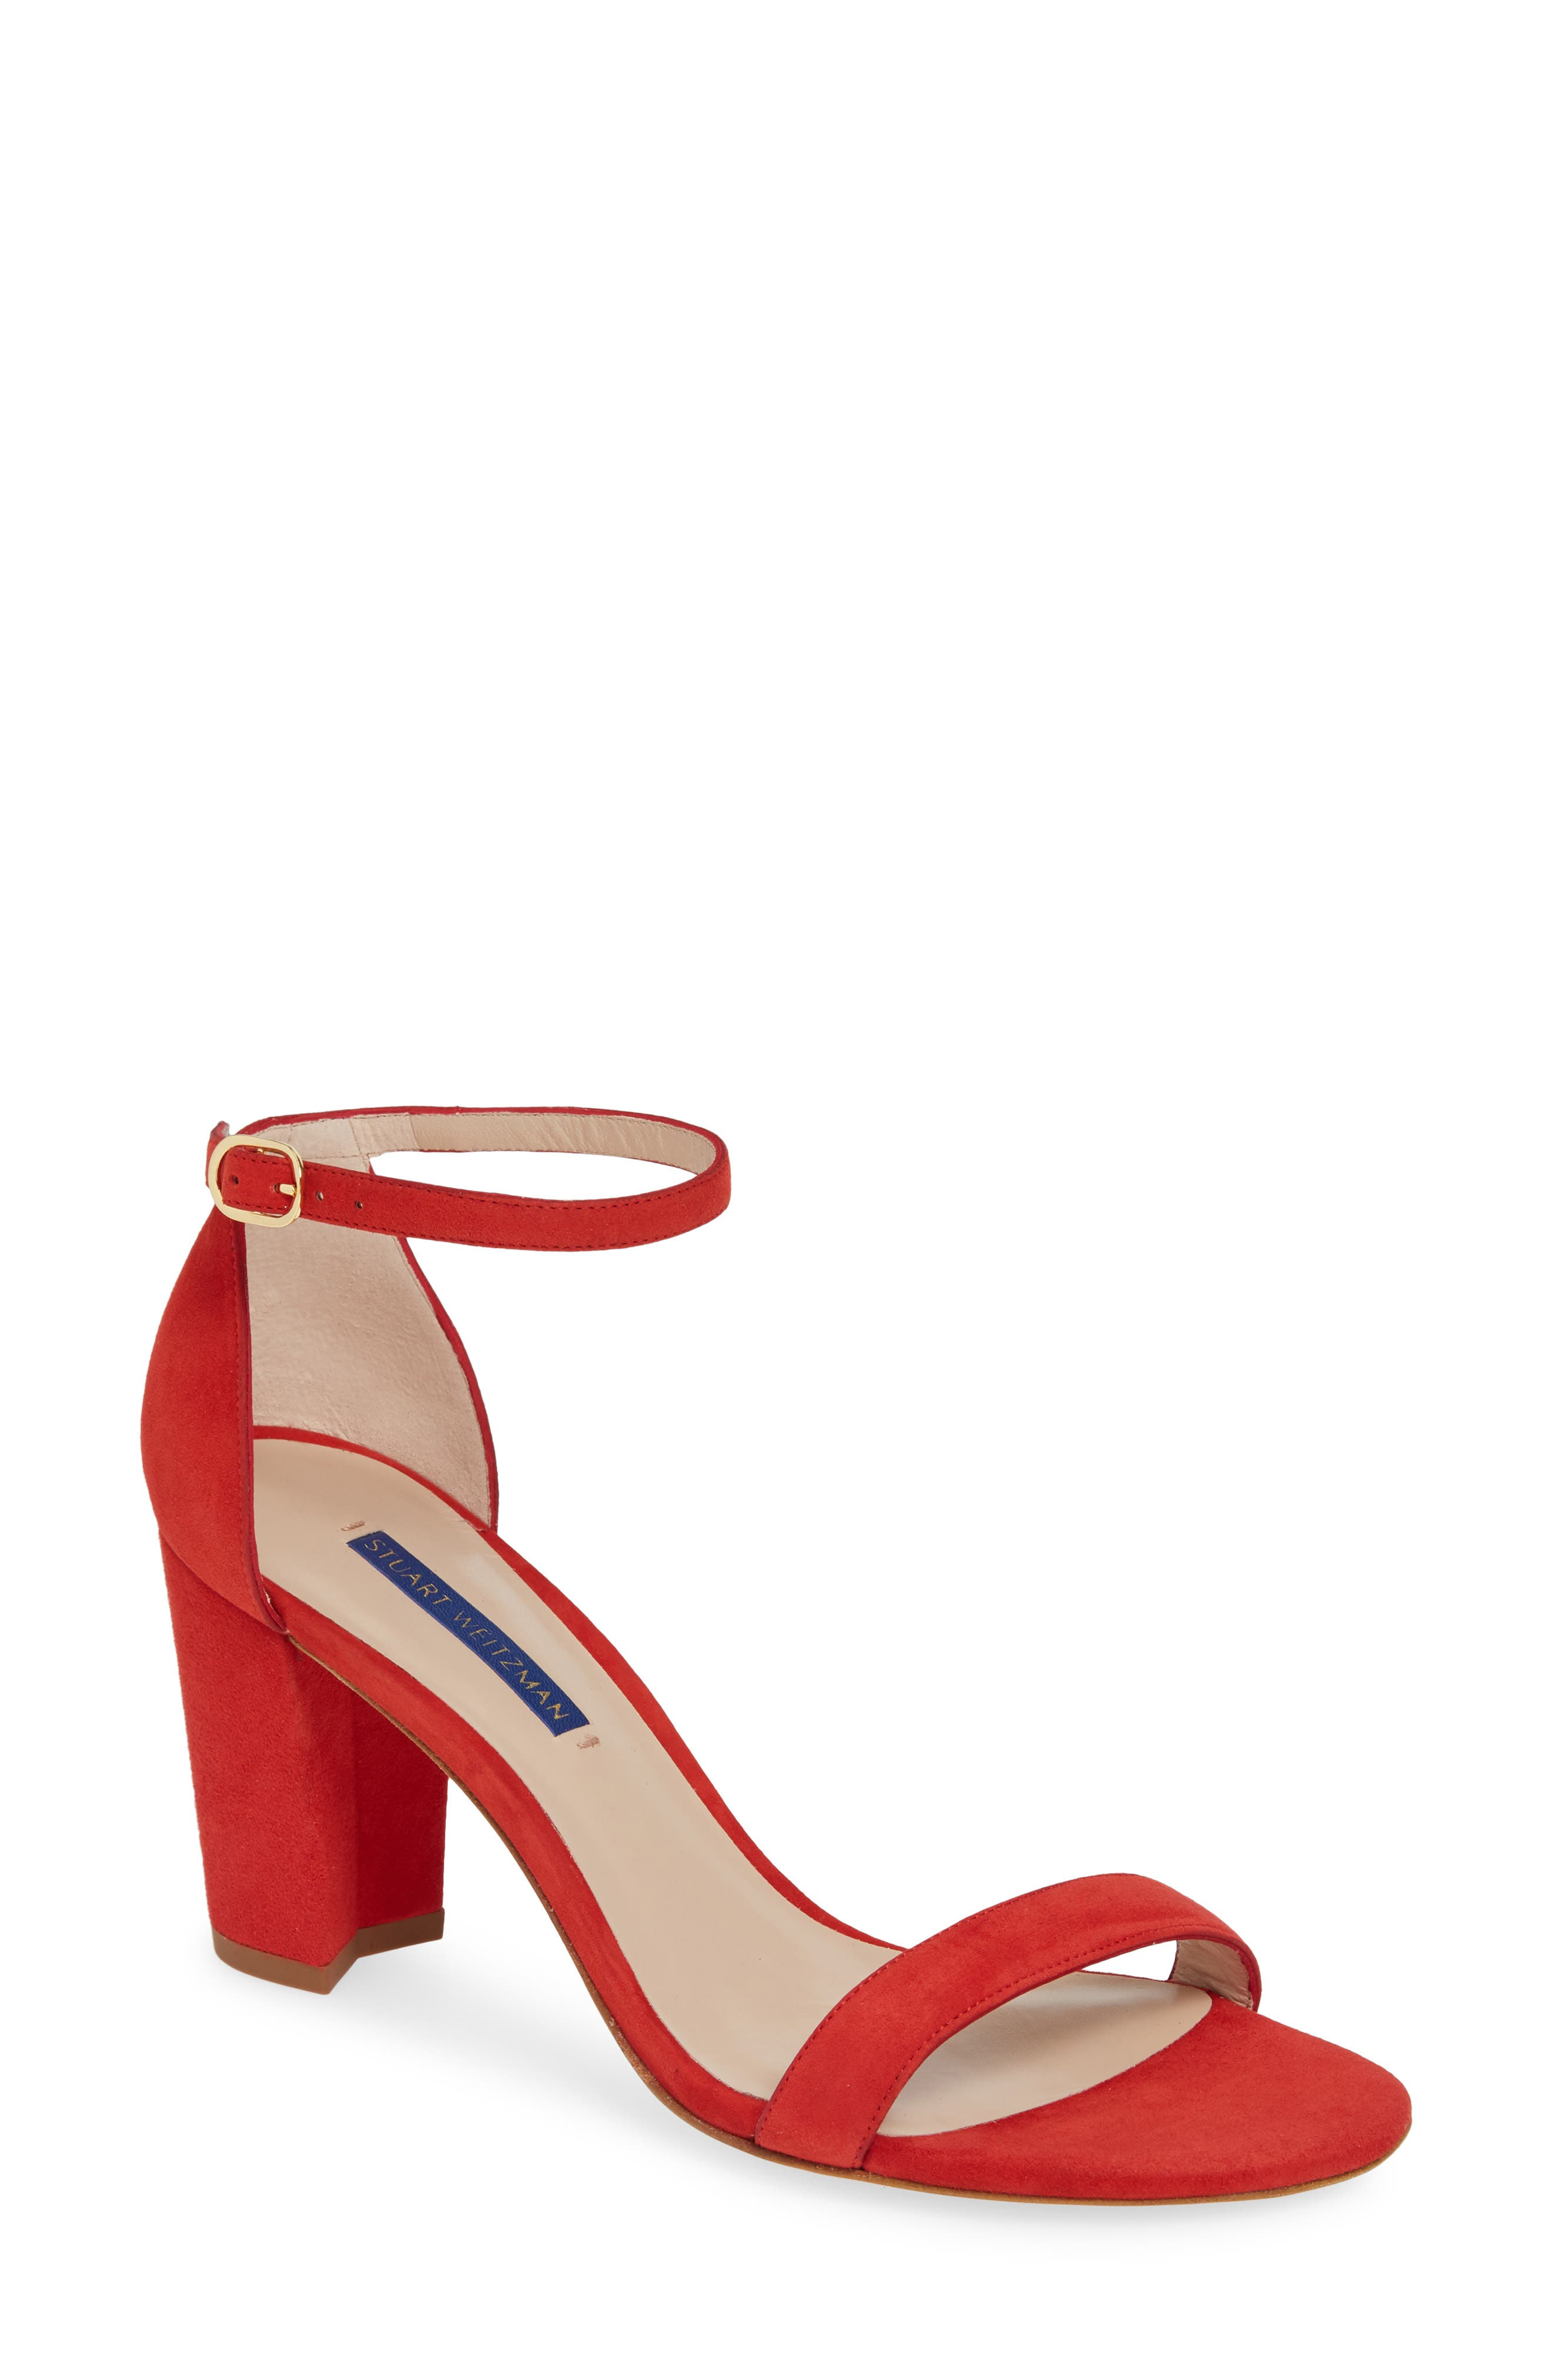 Stuart Weitzman Nearlynude Ankle Strap Sandal- Red